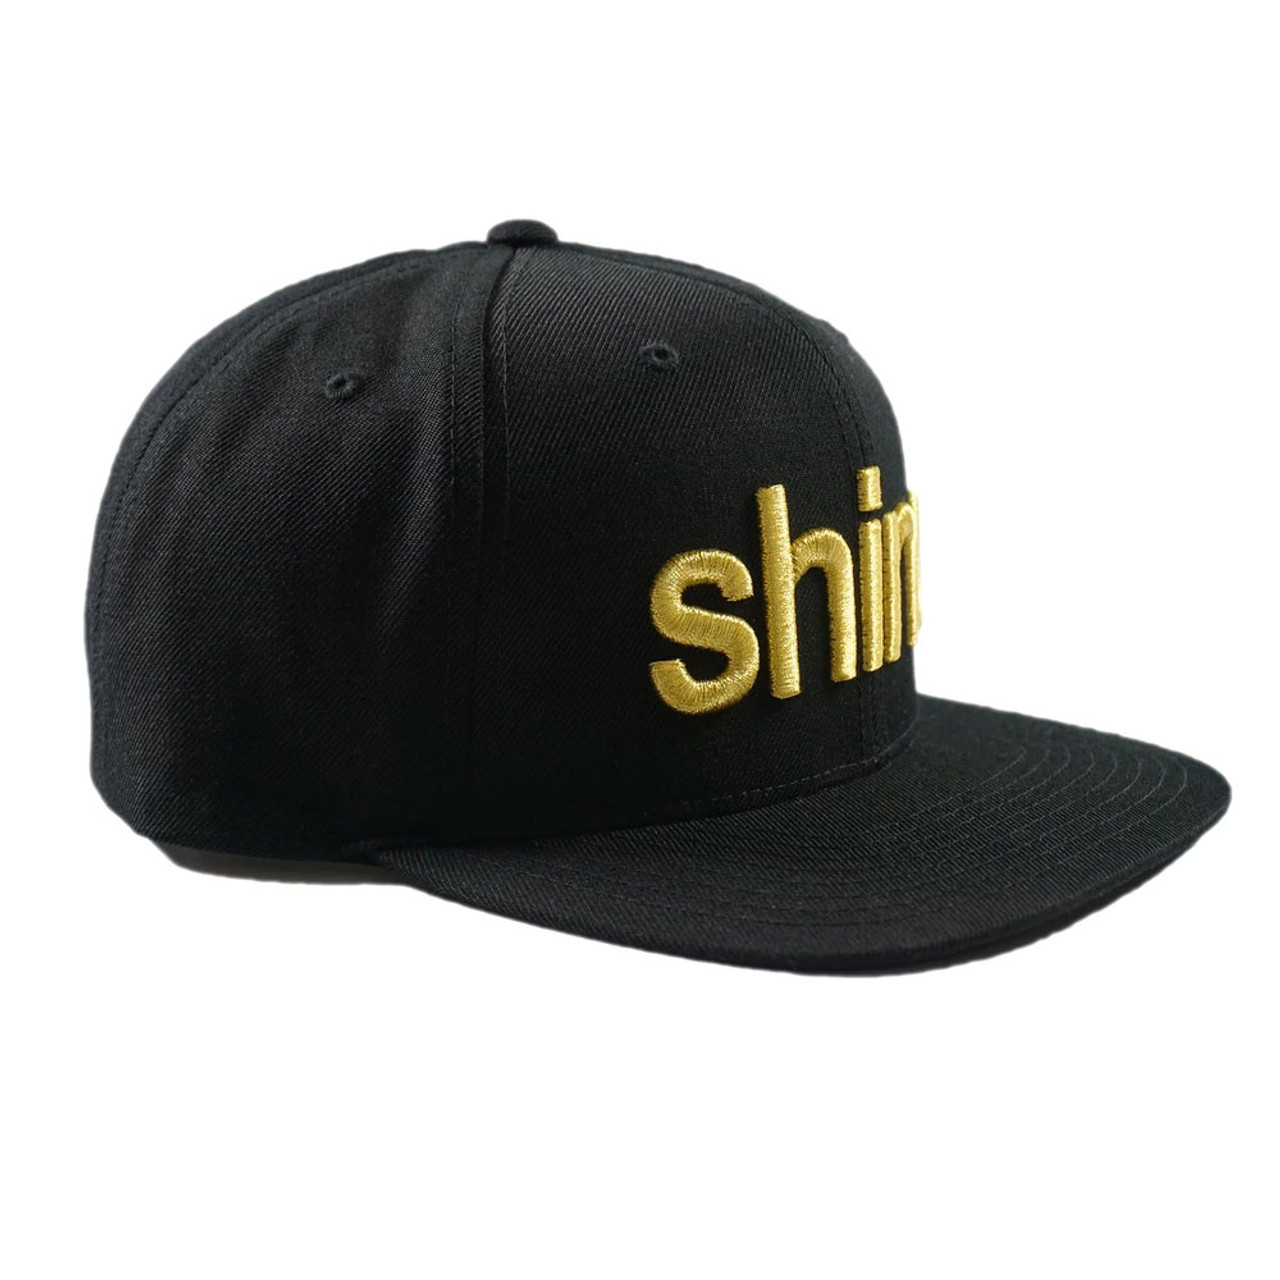 Shine Gold Gang Snapback Hat Front